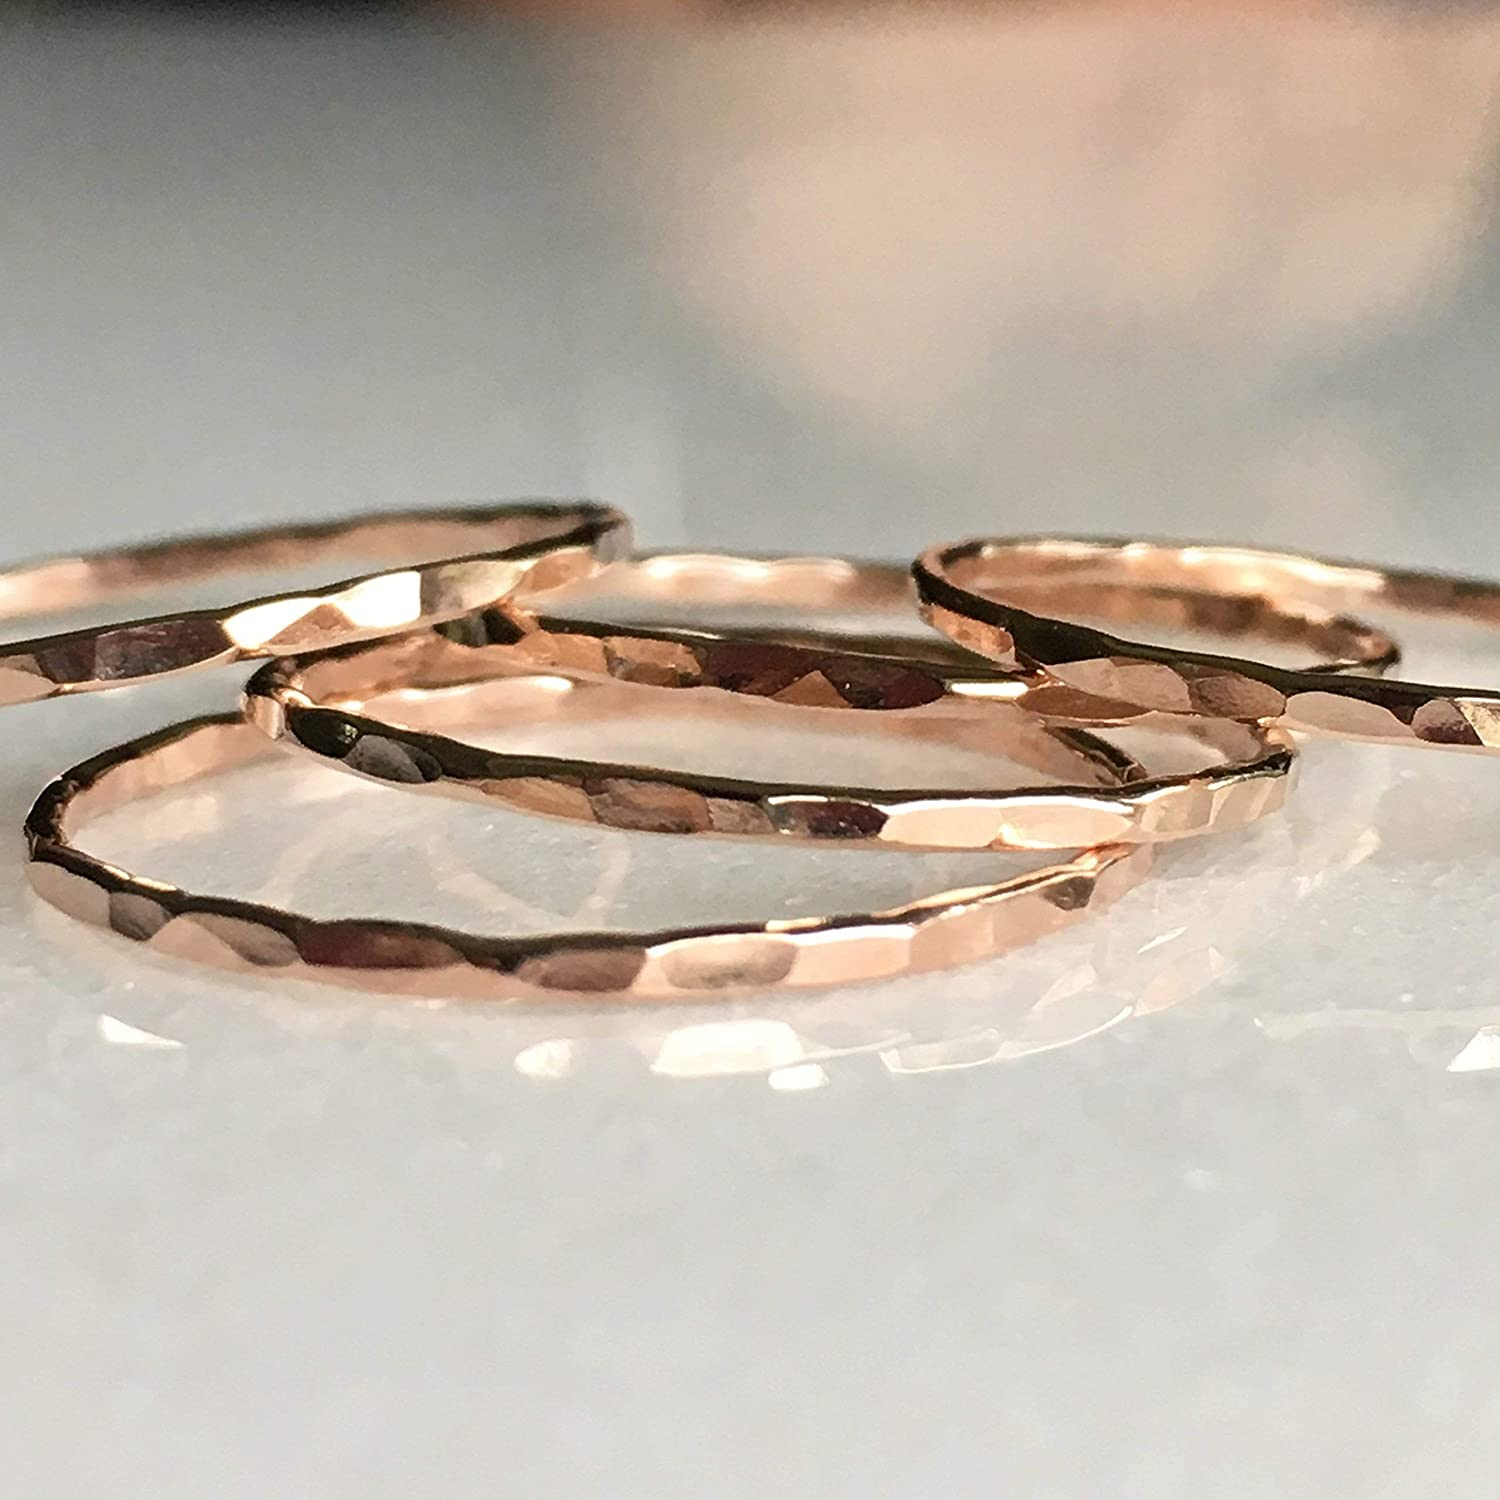 1 Stacking Ring Rose Gold, Dainty Little Plain Band, Handmade in Many Sizes